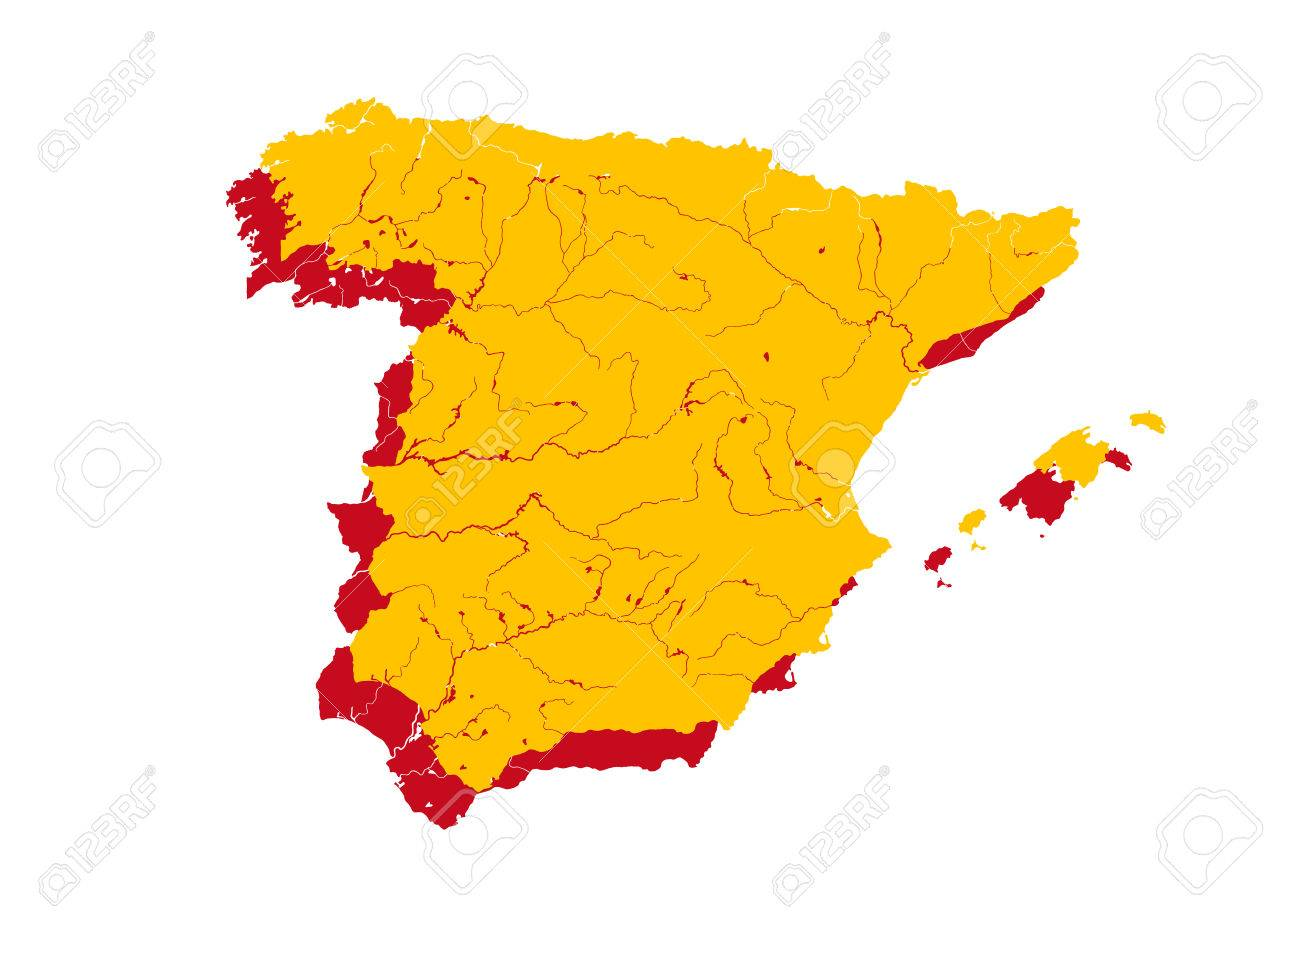 Map Of Spain Rivers.Map Of Spain In Colors Of The Spanish Flag Colors Of Flag Are